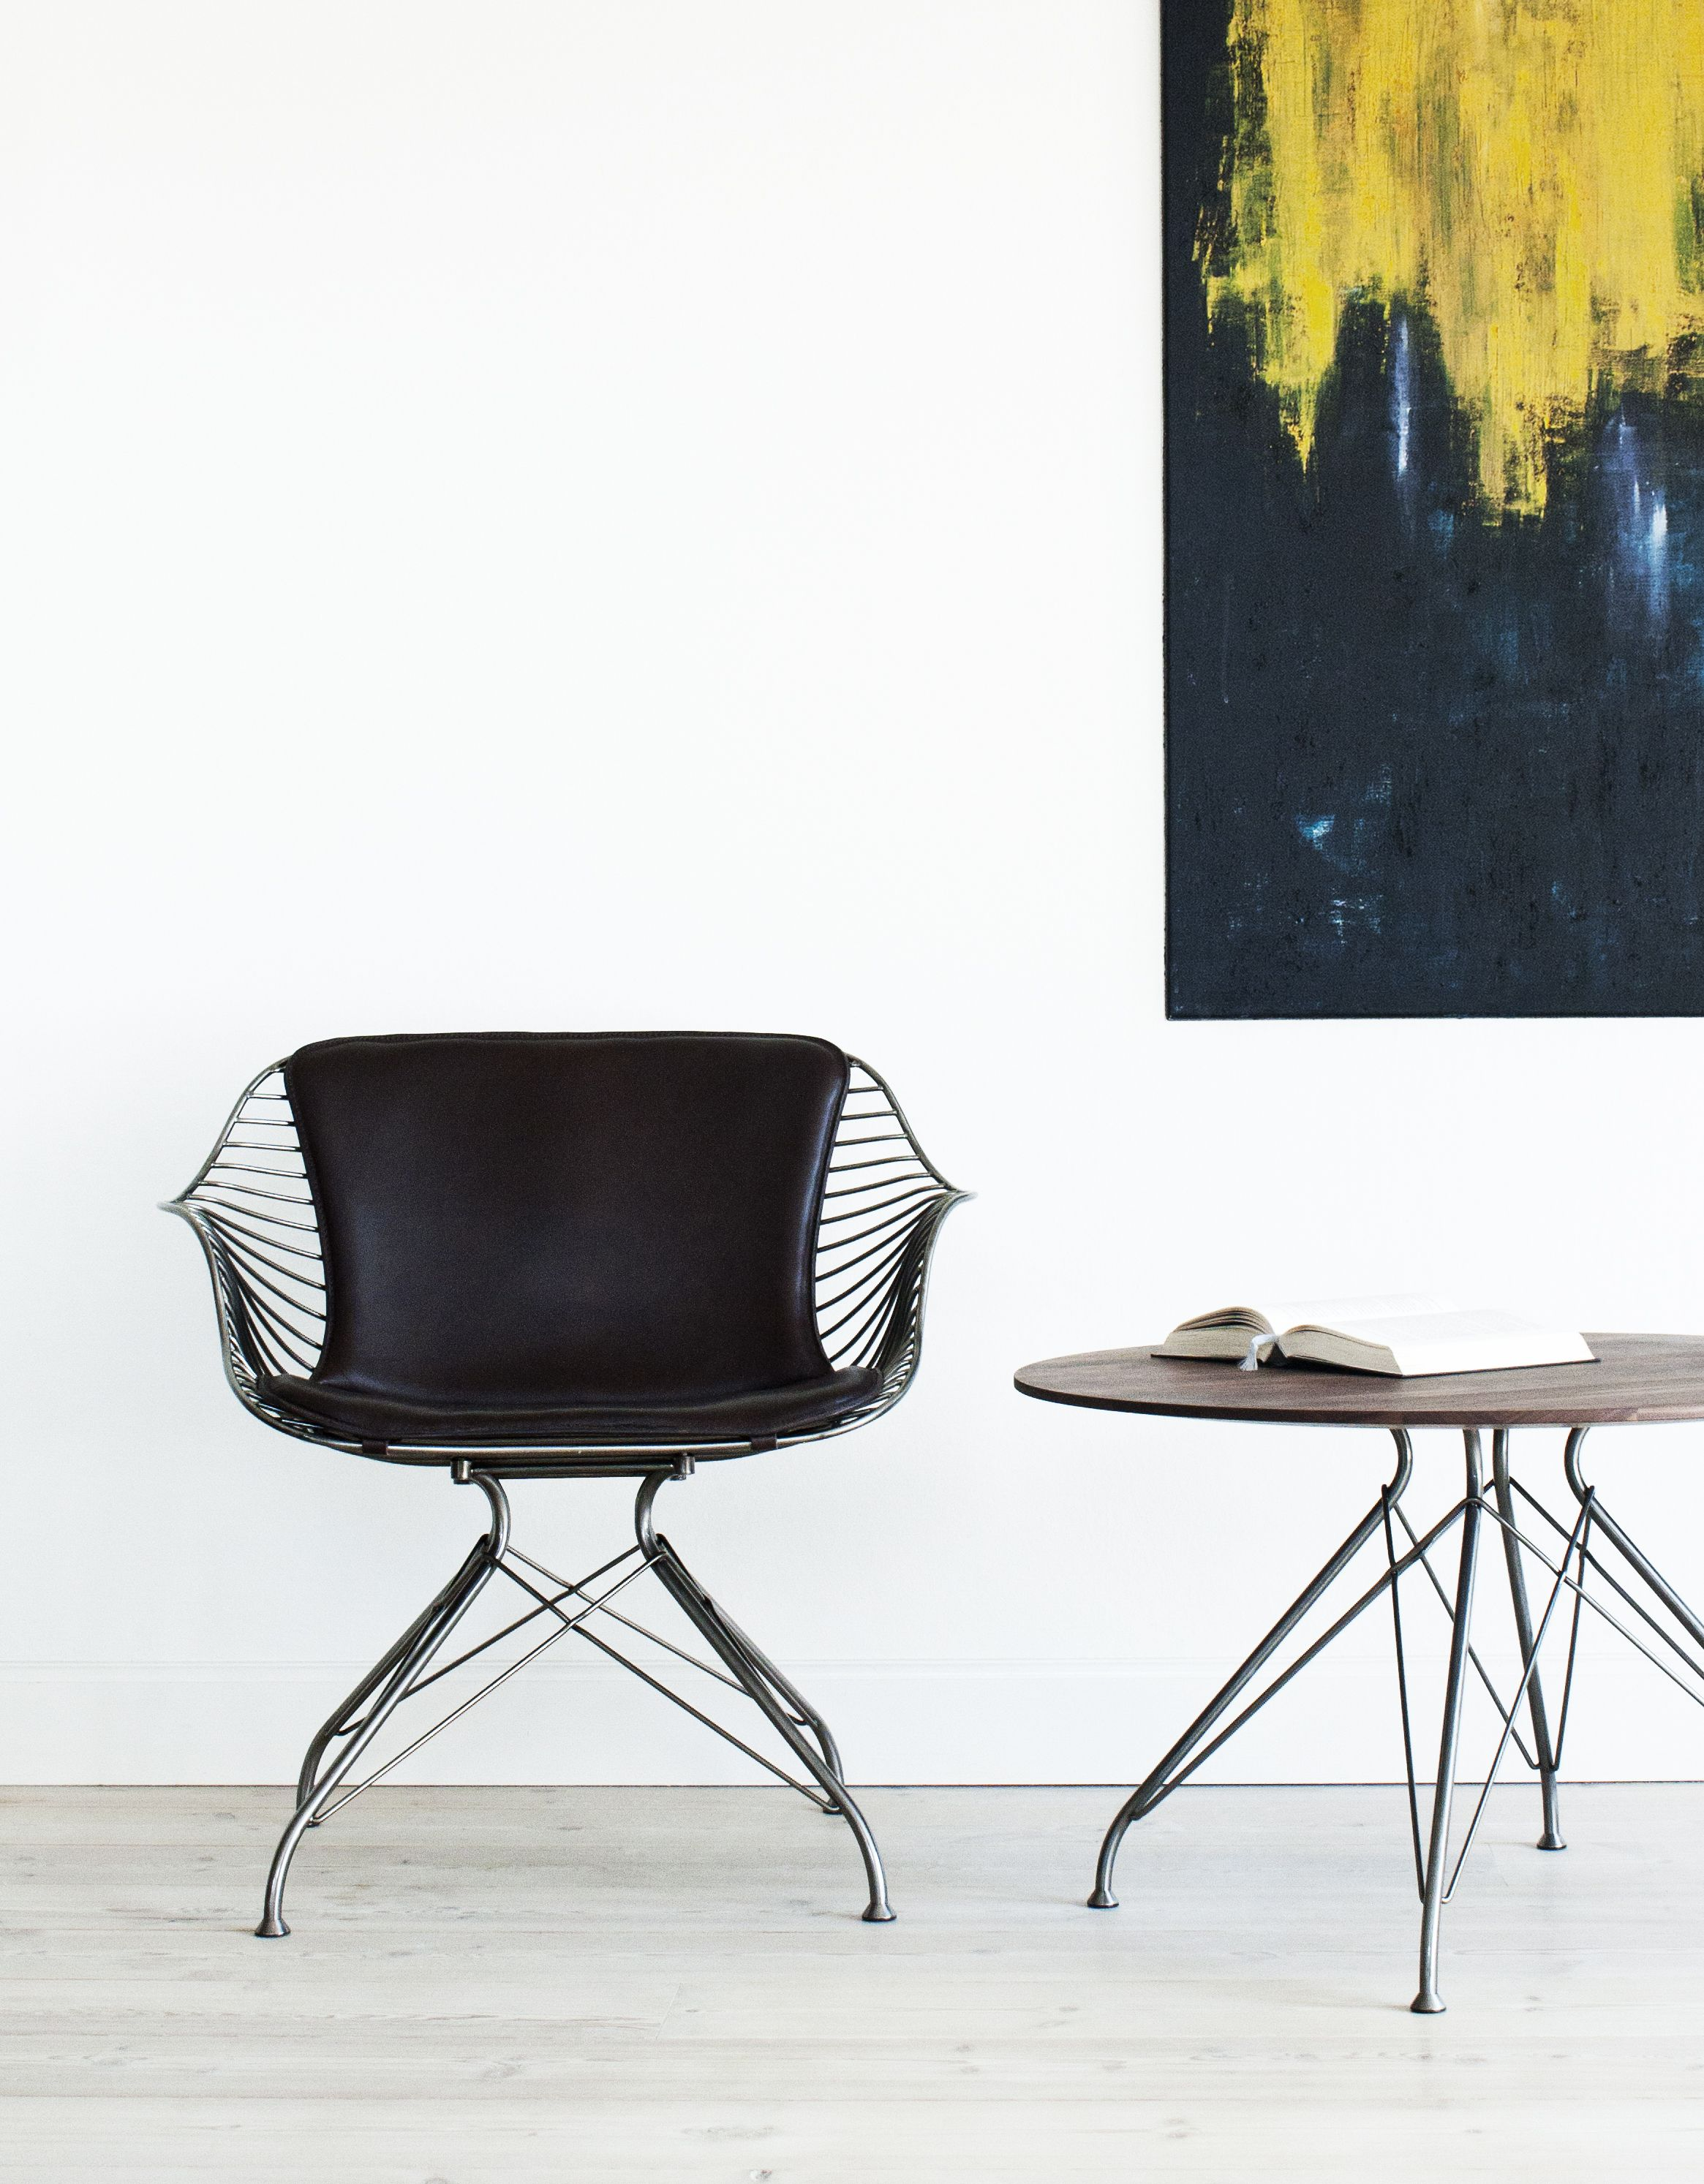 Overgaard & Dyrman Wire Lounge Chair and Wire Coffee Table